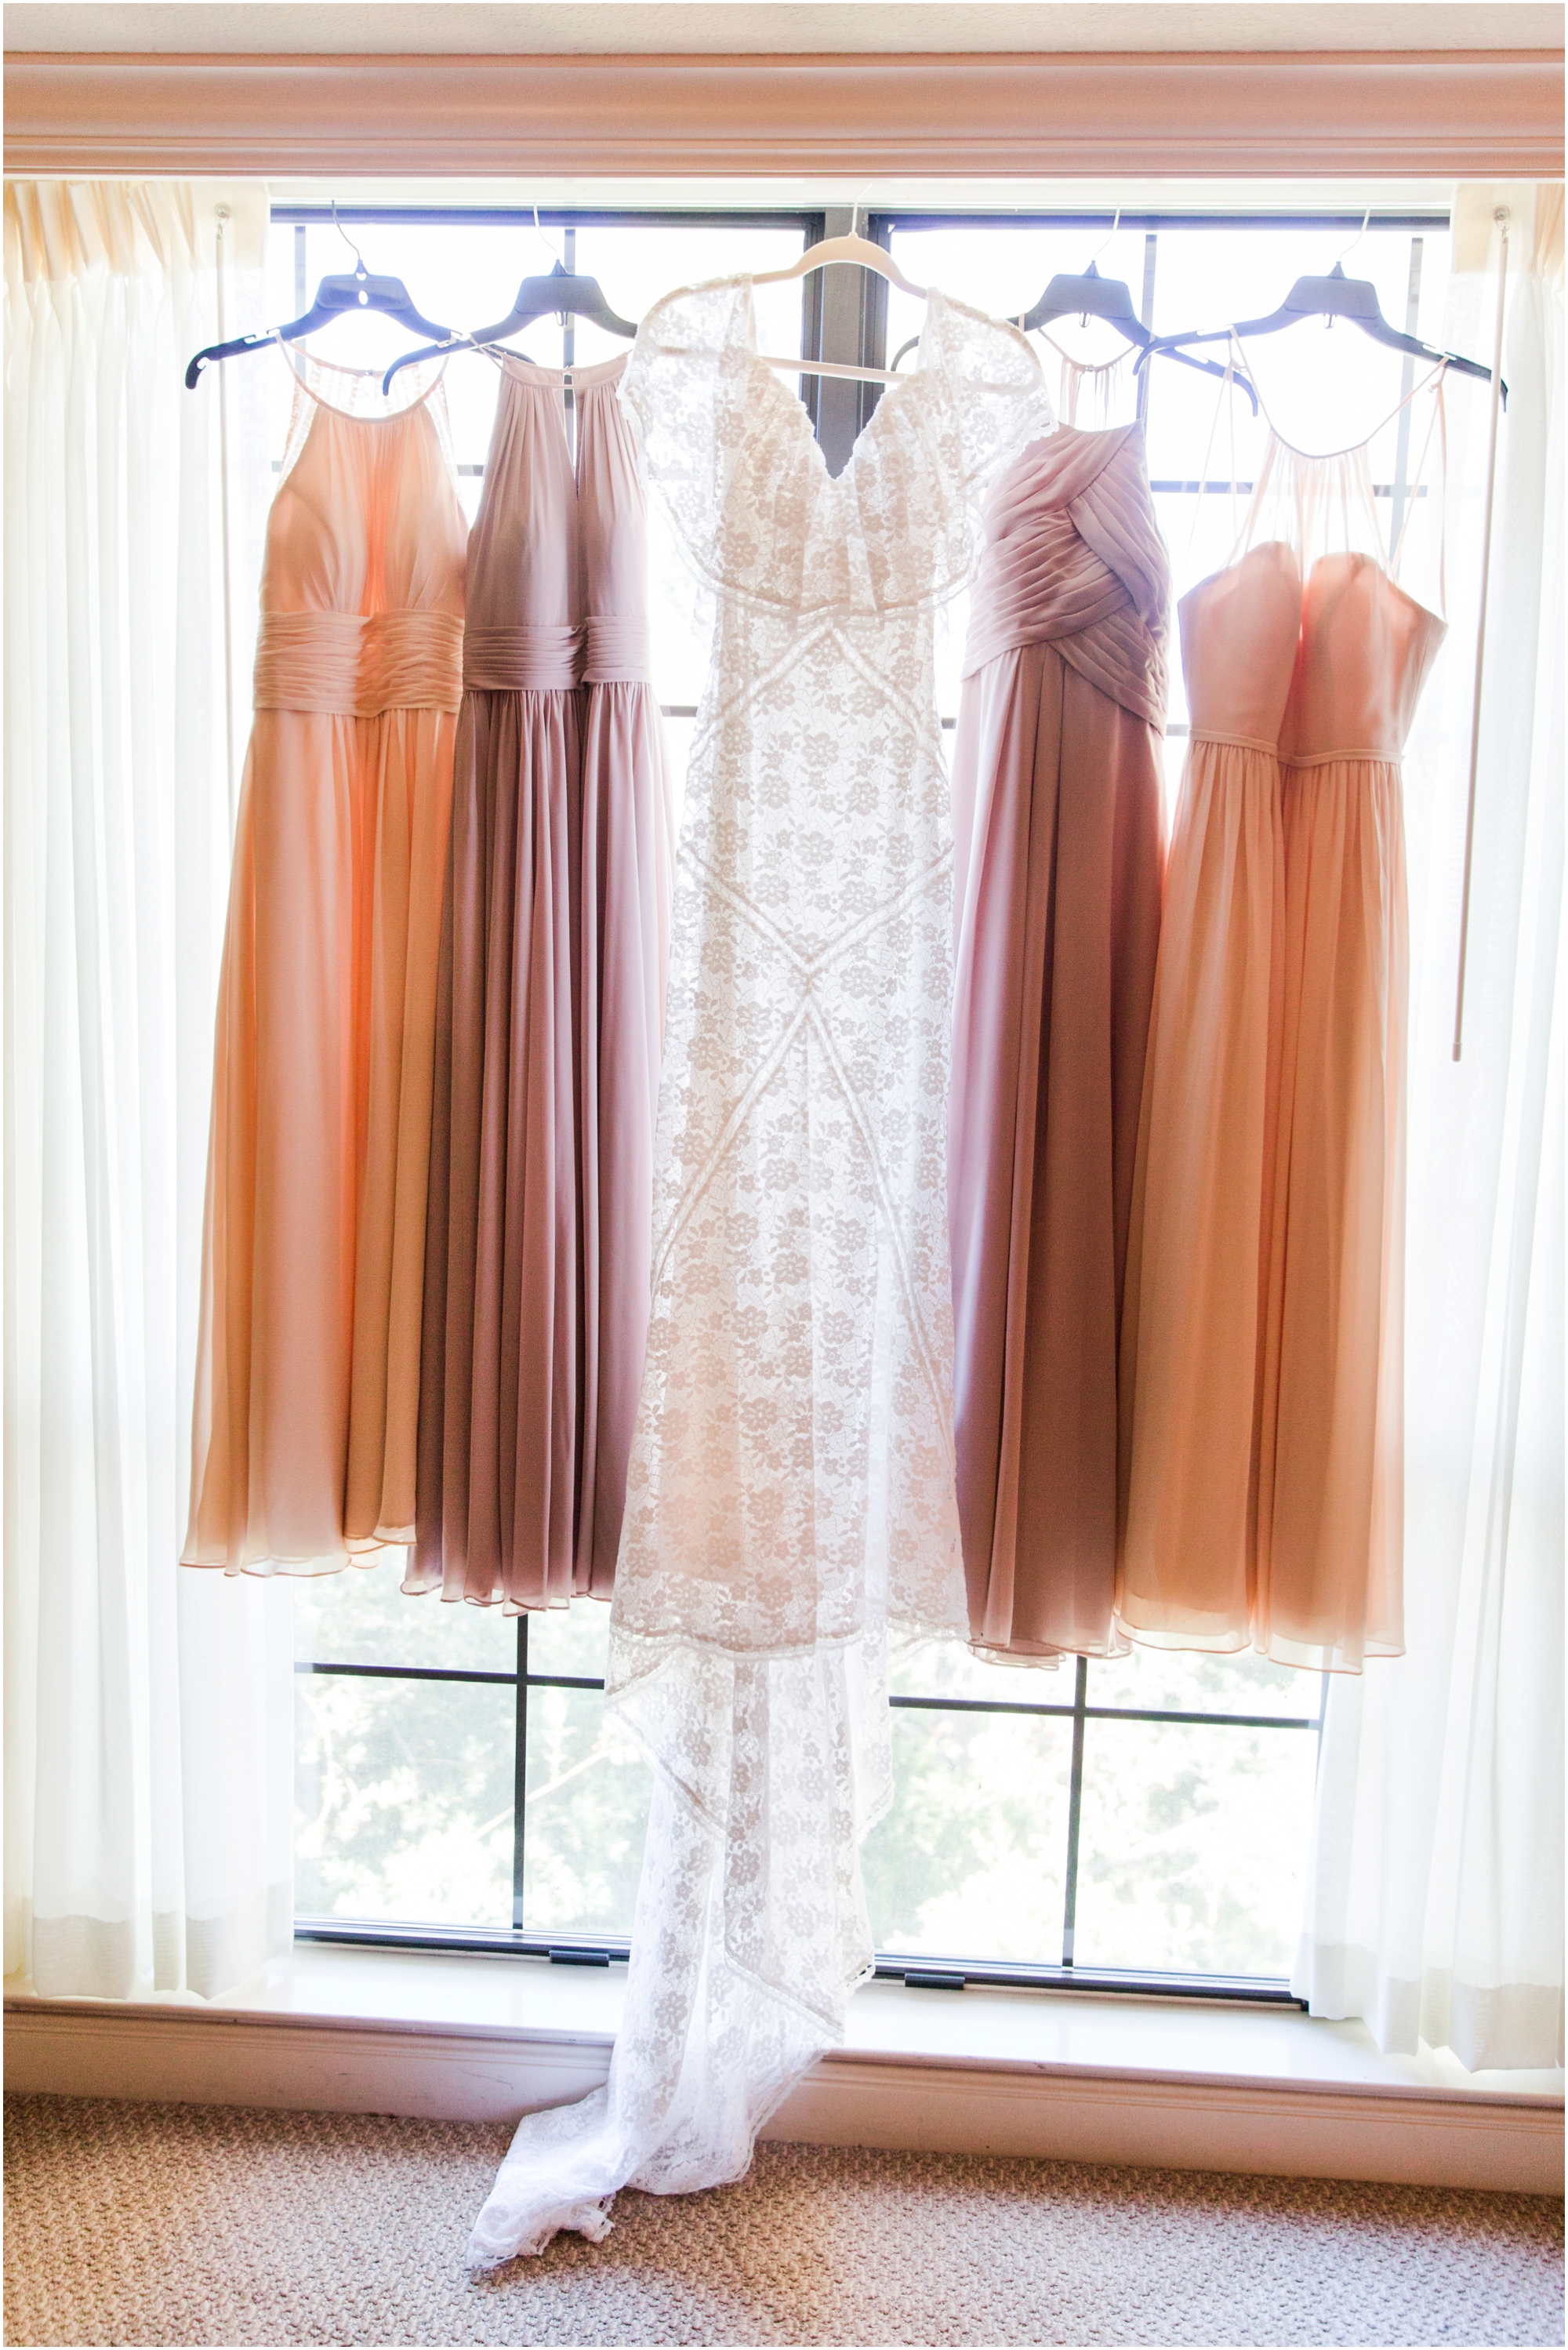 Saratoga Springs wedding pictures by Briana Calderon Photography_0308.jpg